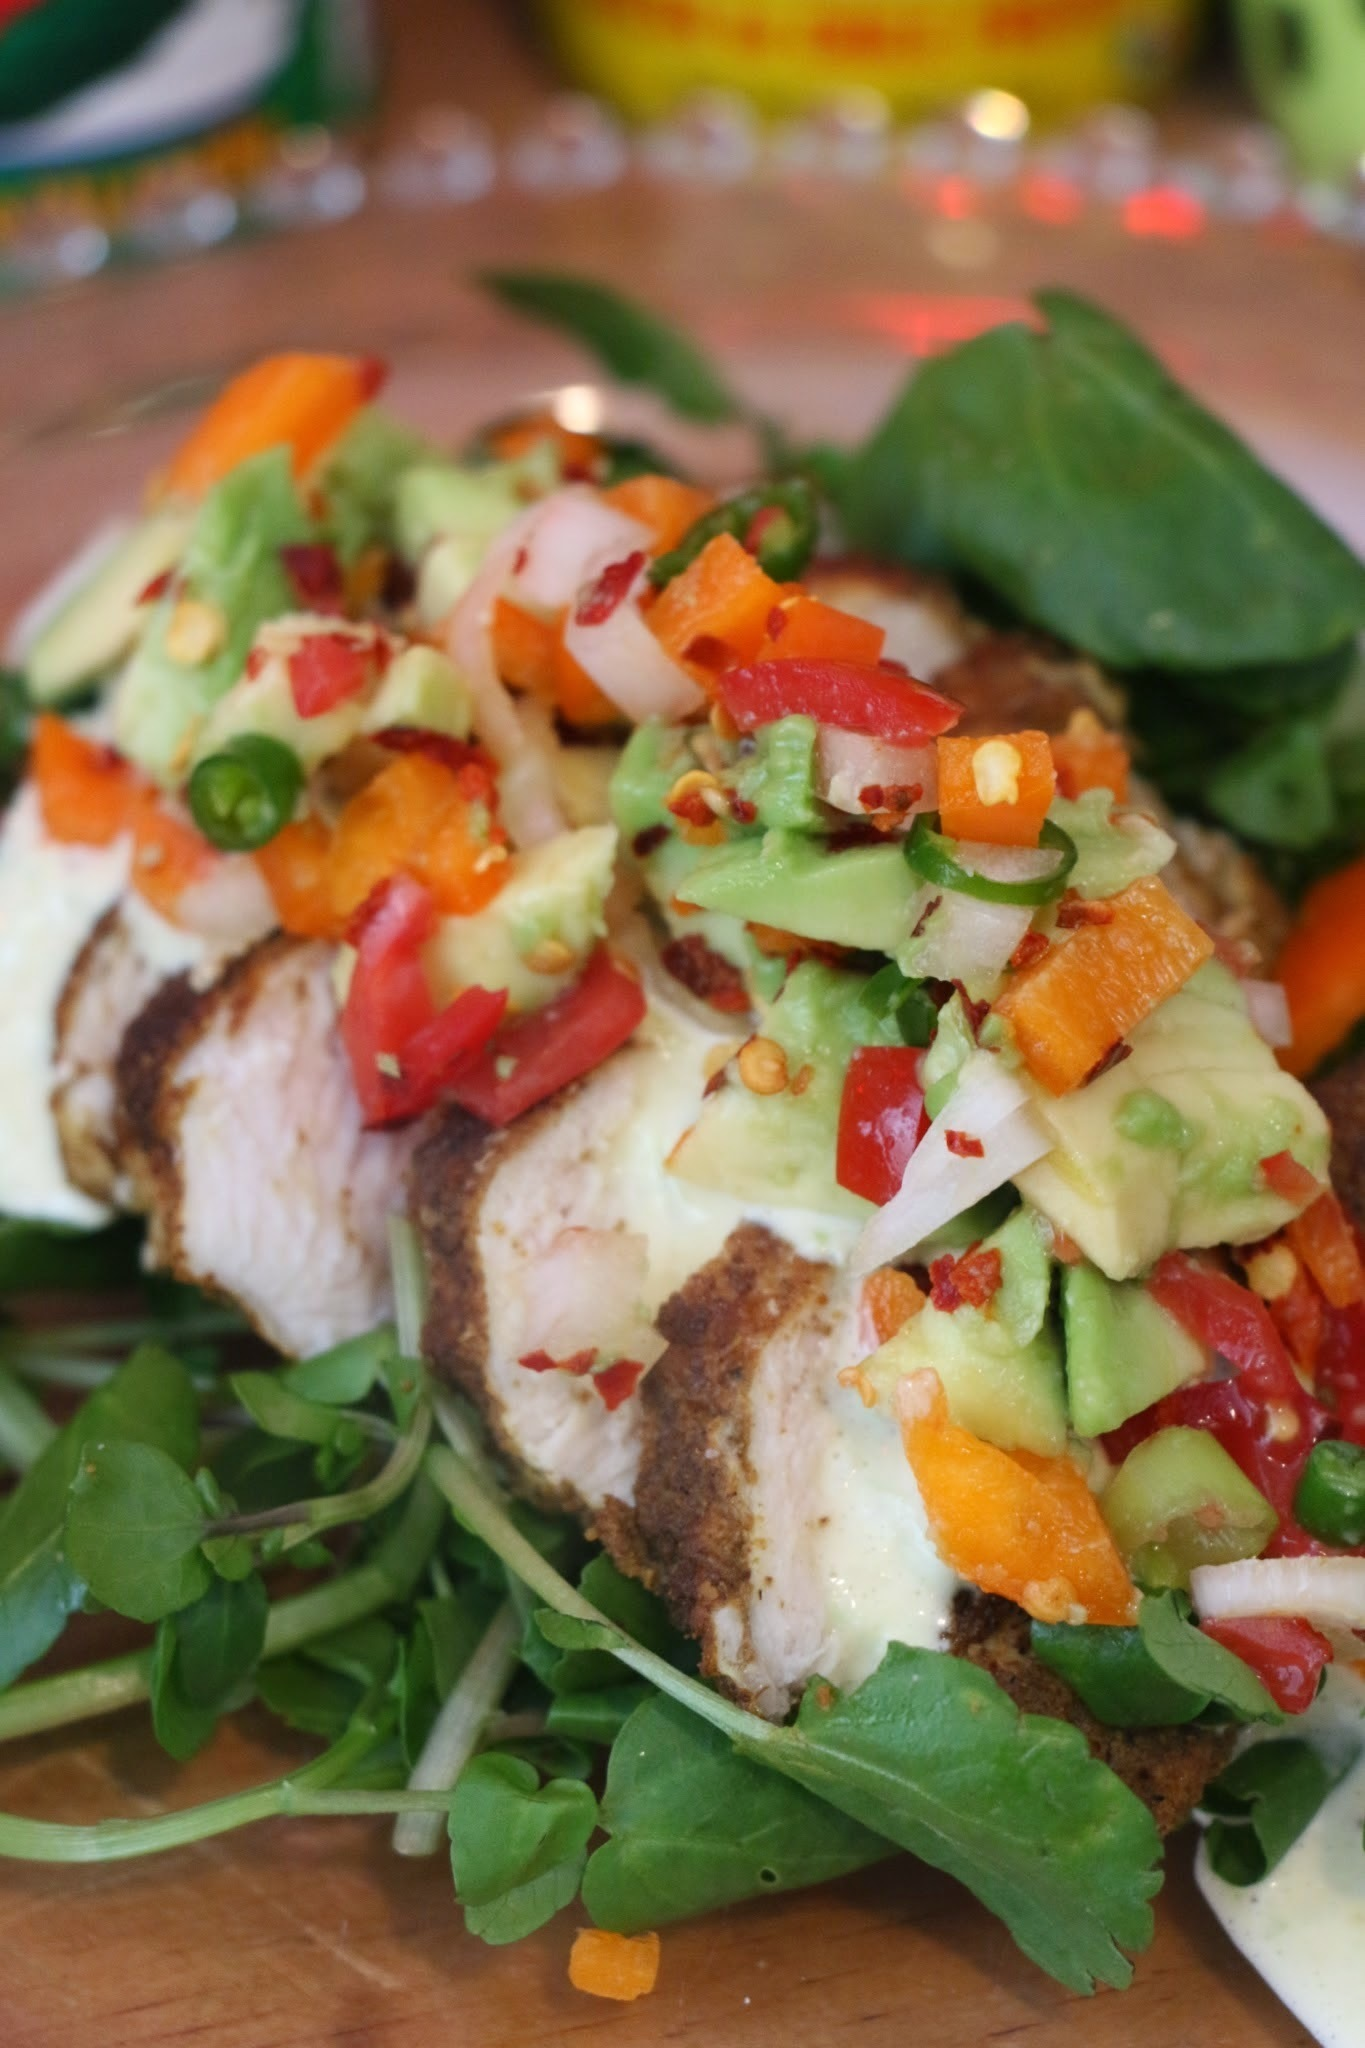 PALEO CURRY SPICED CHICKEN WITH CREAMY CUECUMBER MAYO DRESSING AND AVOCADO CHILLI LIME SALSA